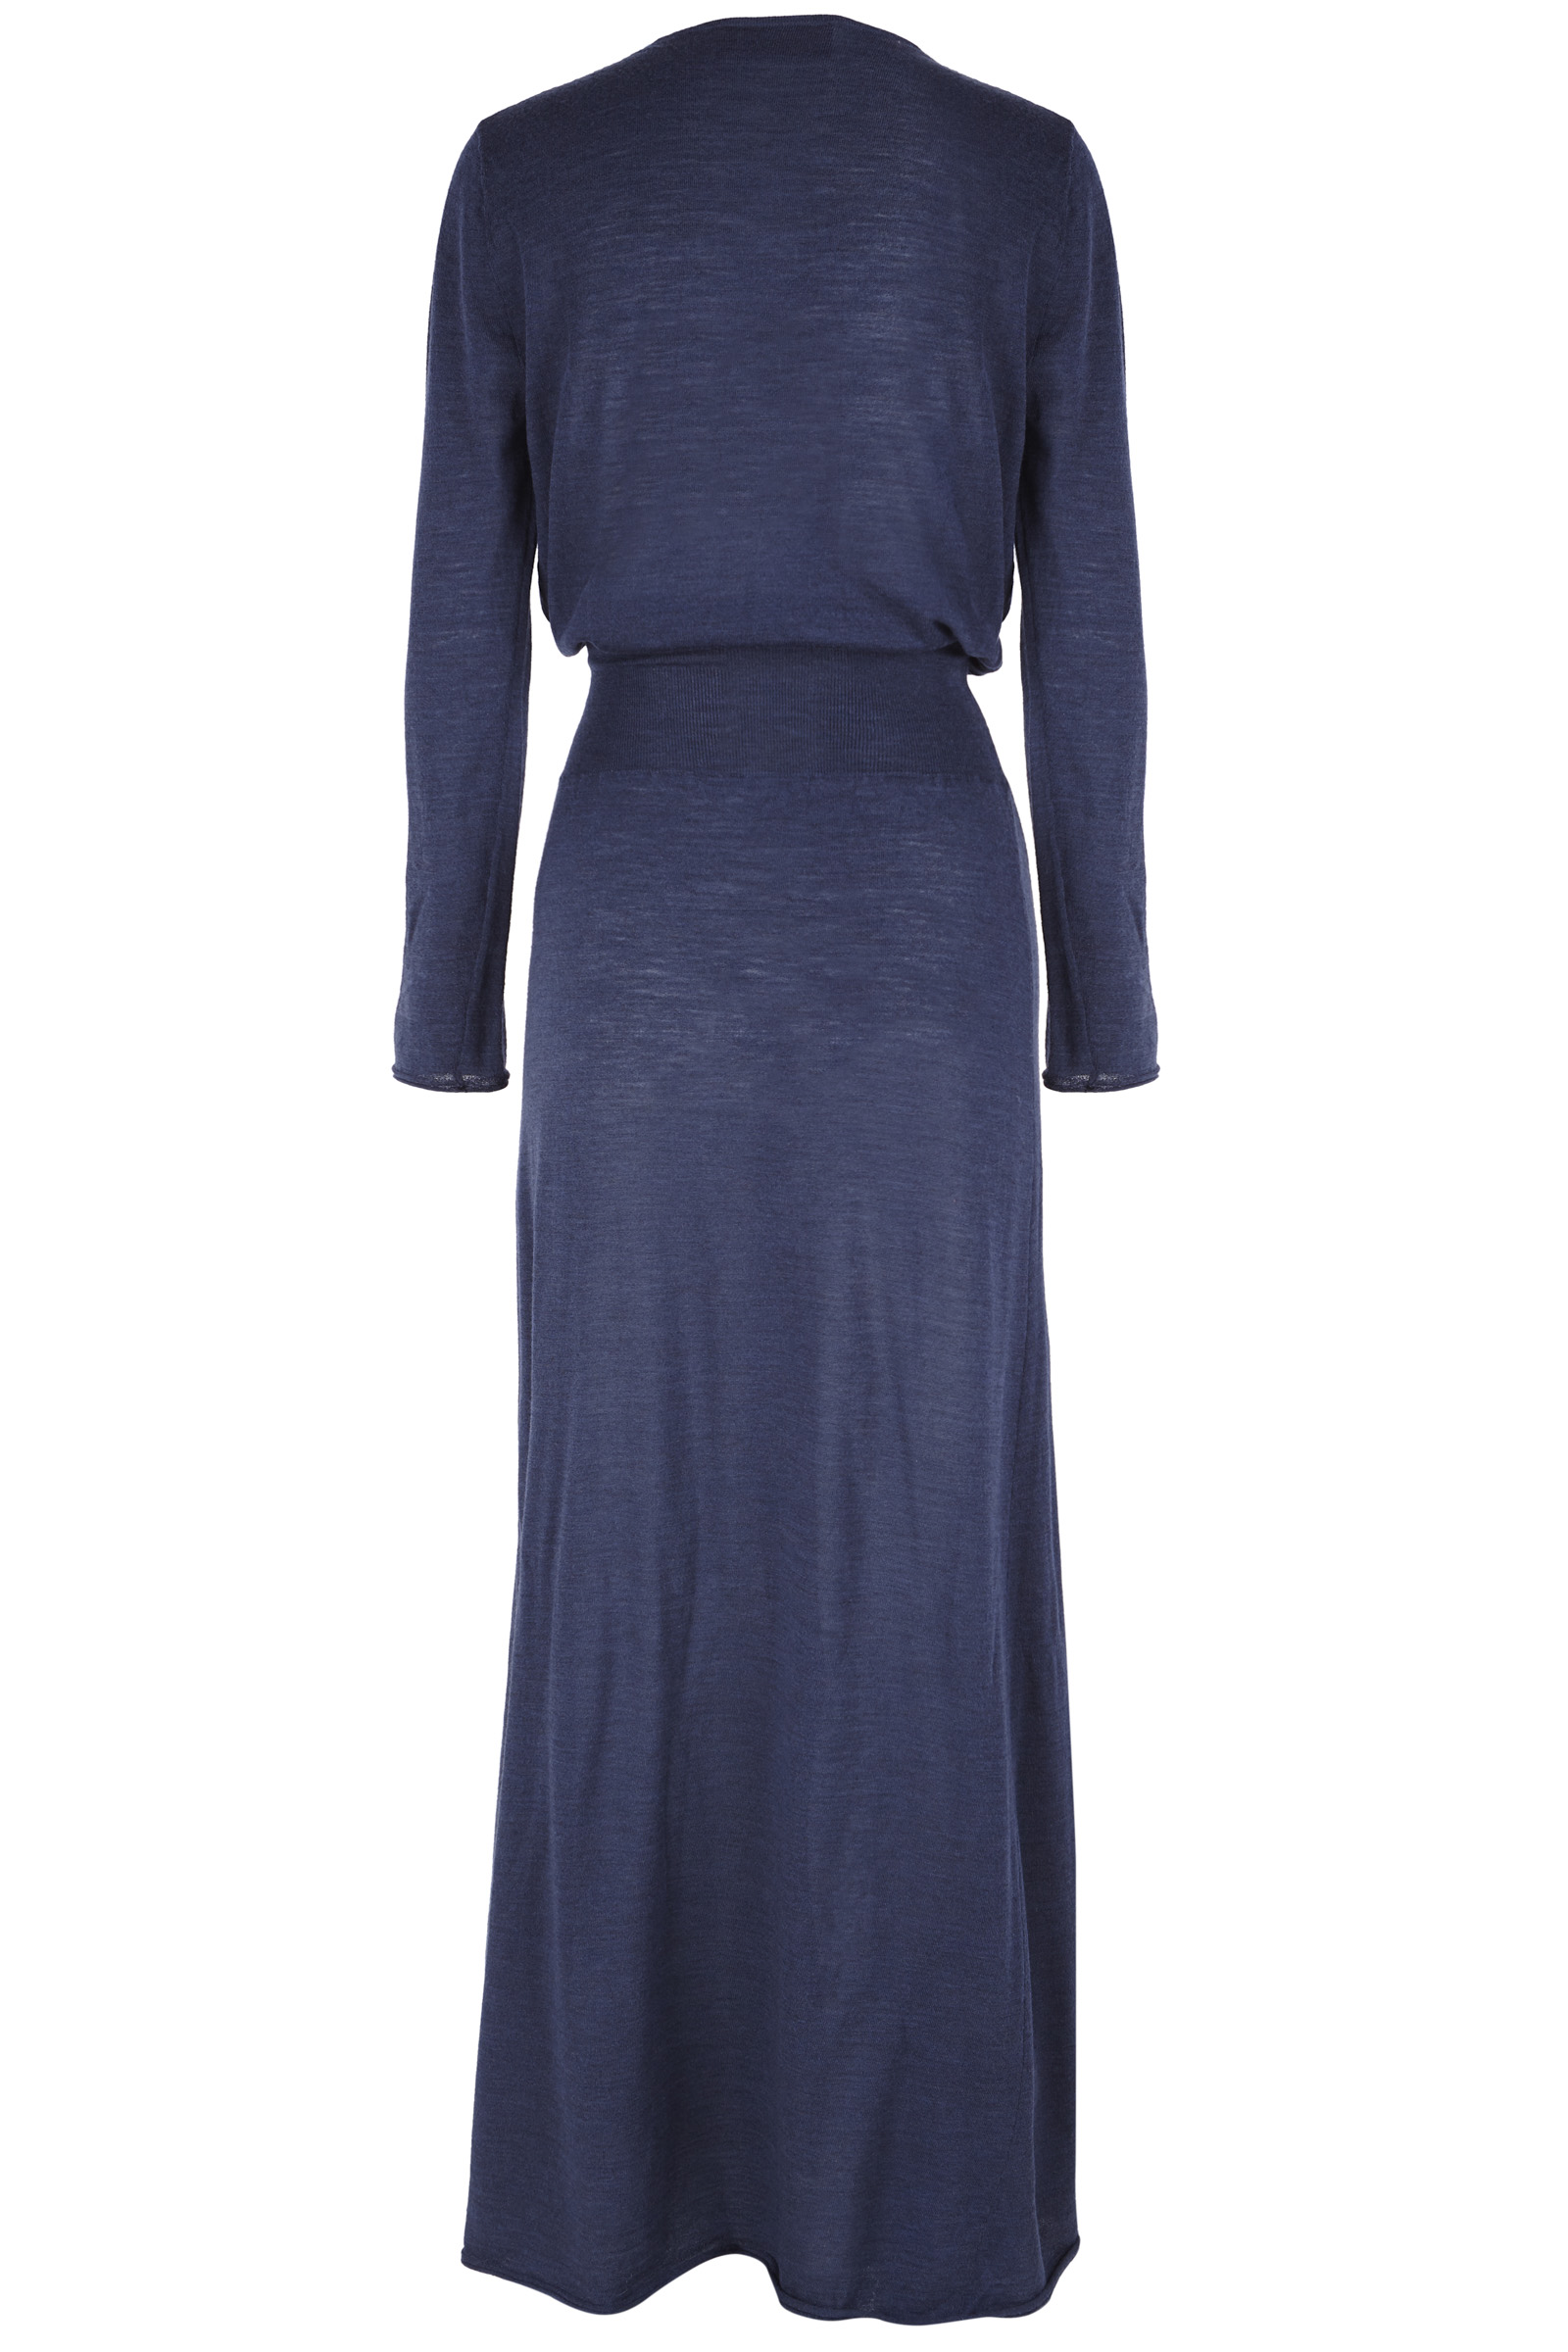 SINTRA, BLUE MERINO WOOL DRESS - Cortana